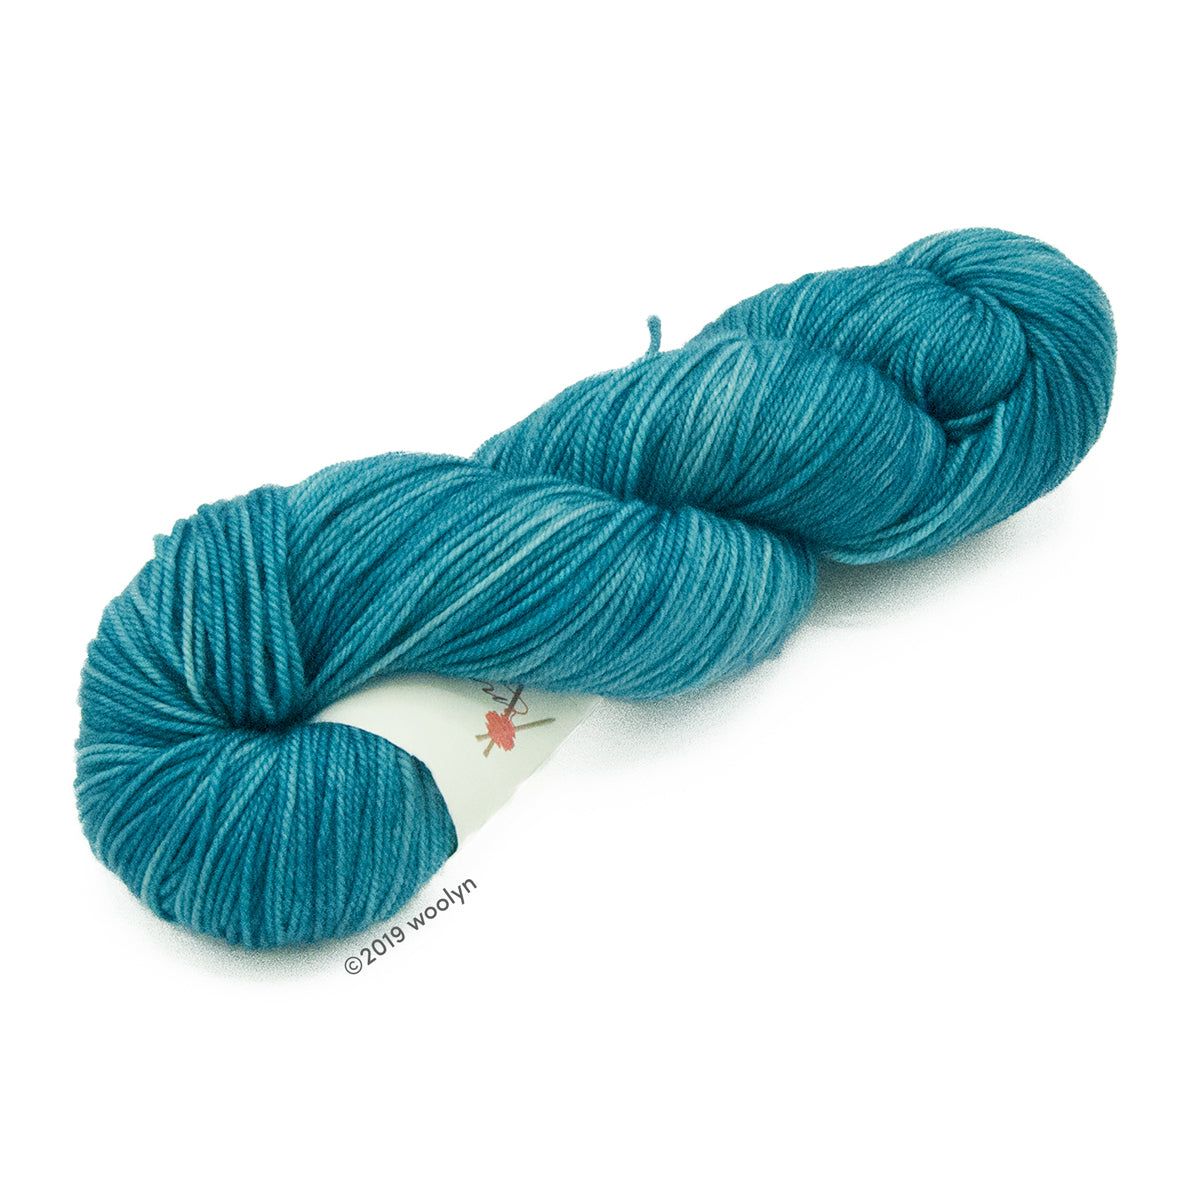 Hand dyed aqua yarn twisted into a skein.